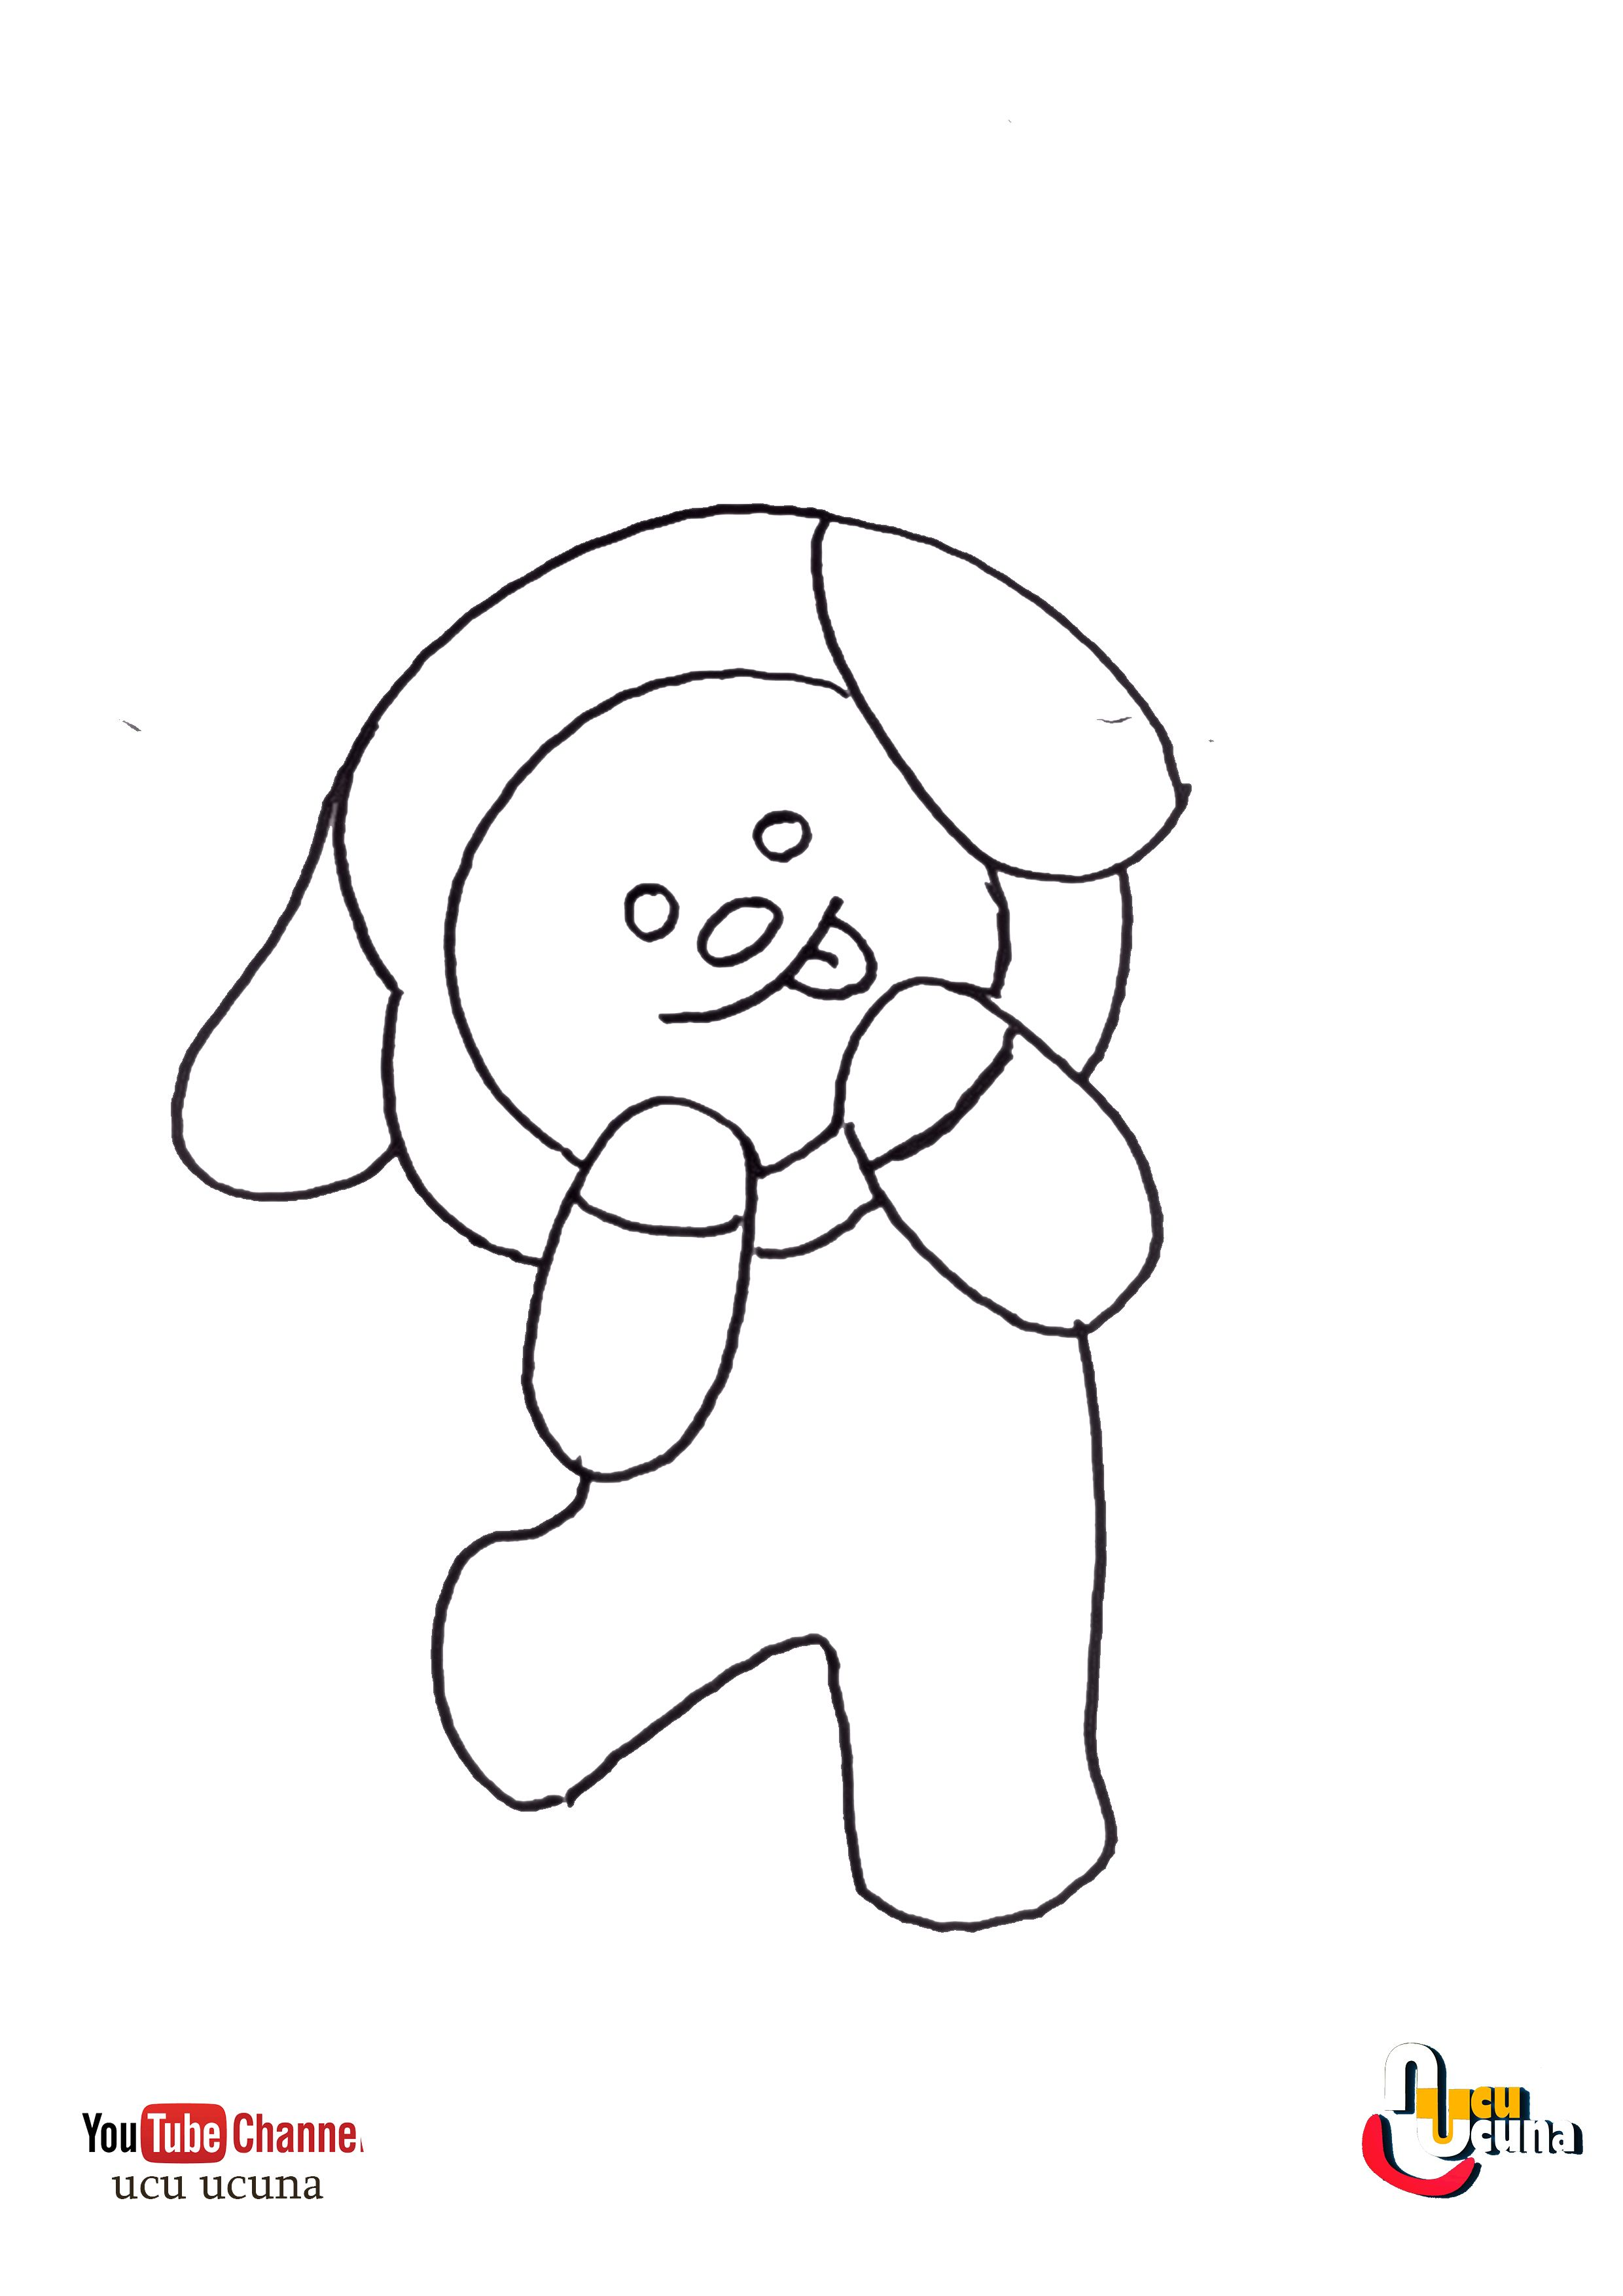 How To Draw Chimmy Bt21 Bts Step By Step Easy In 2020 Easy Cartoon Drawings Easy Drawings Bts Drawings